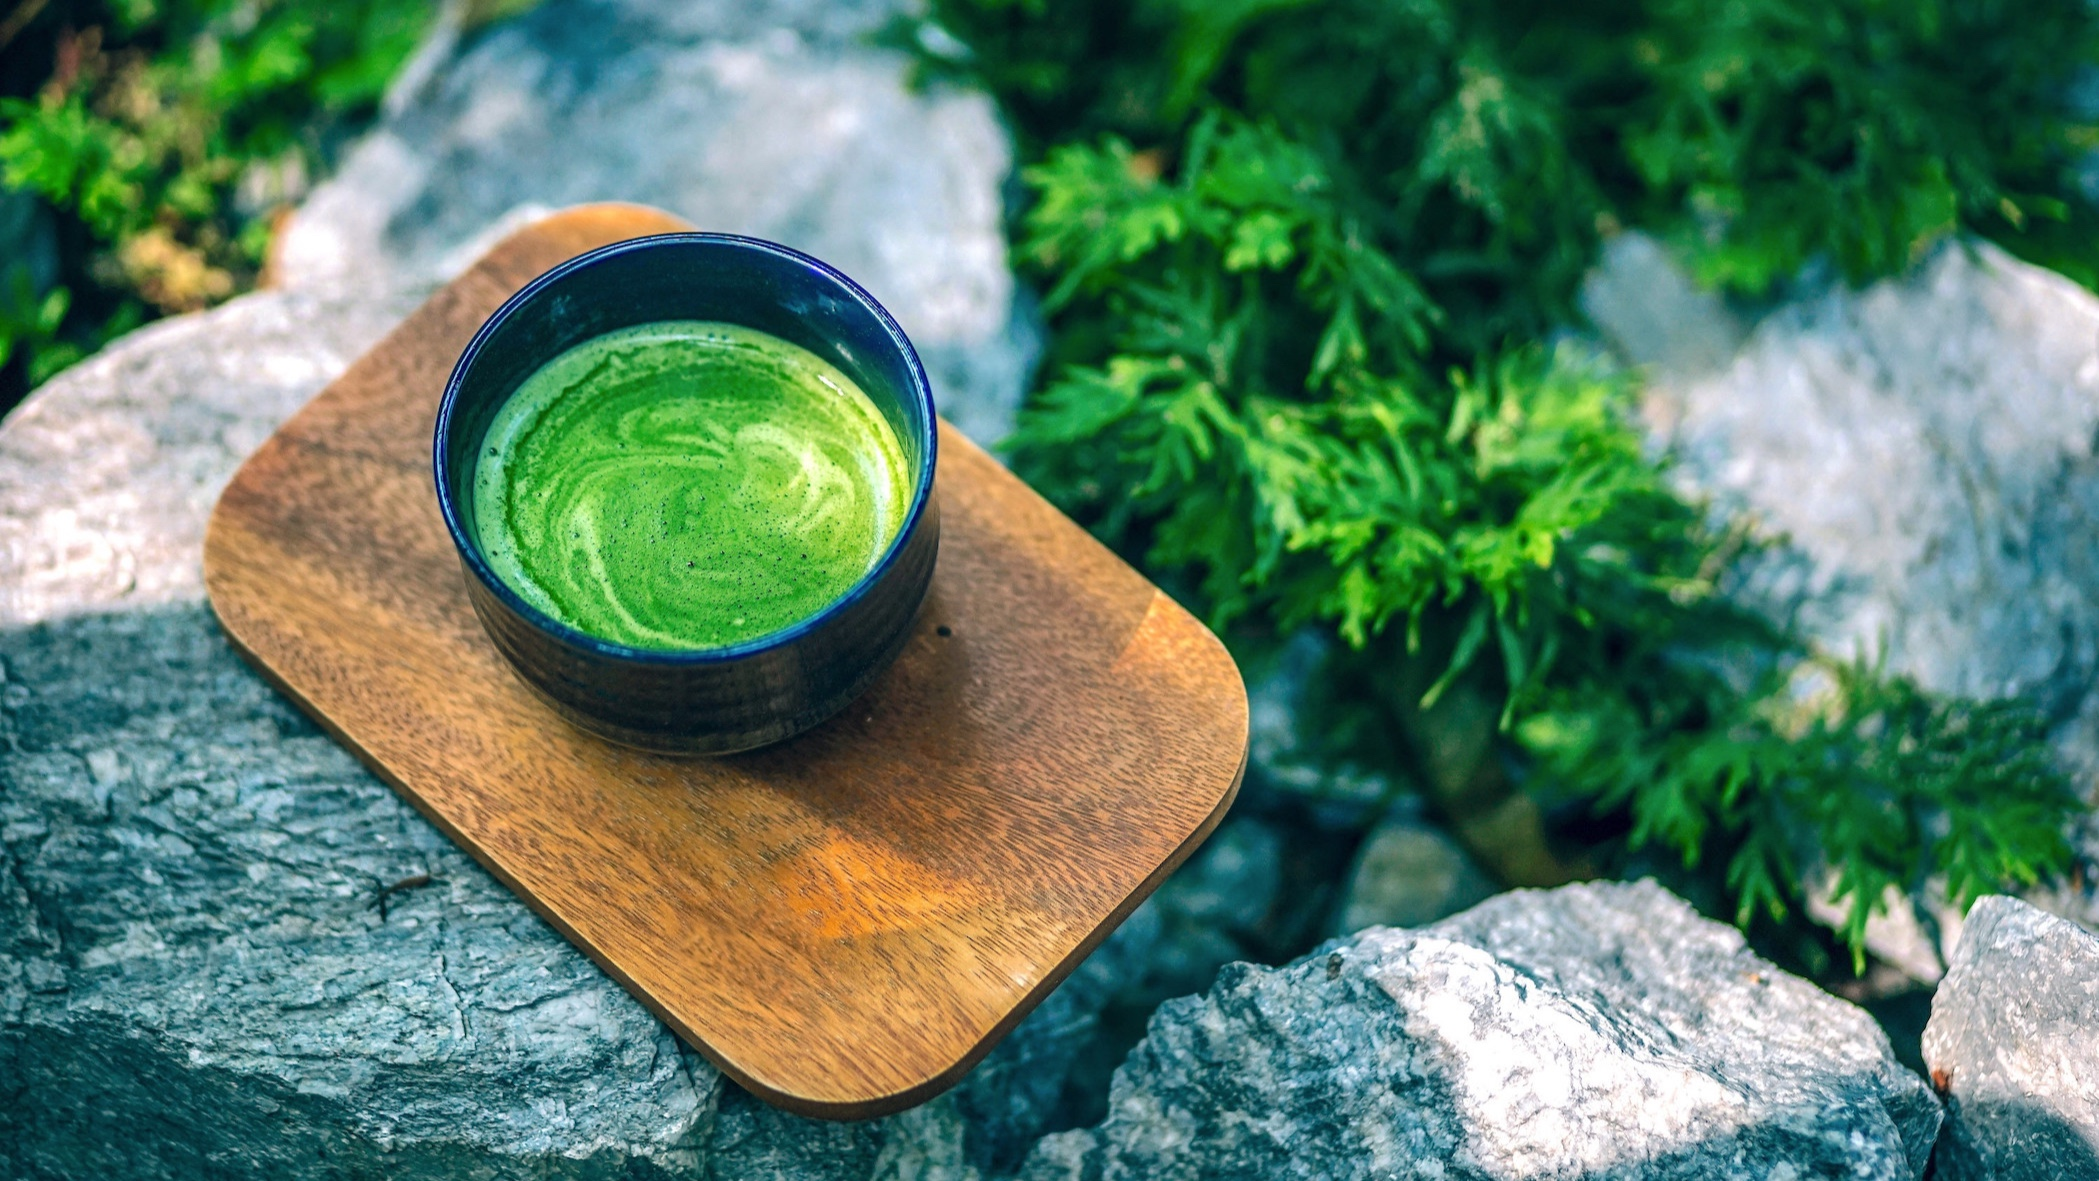 matcha+brewed+in+cup+on+rocks+in+forest+2.jpg